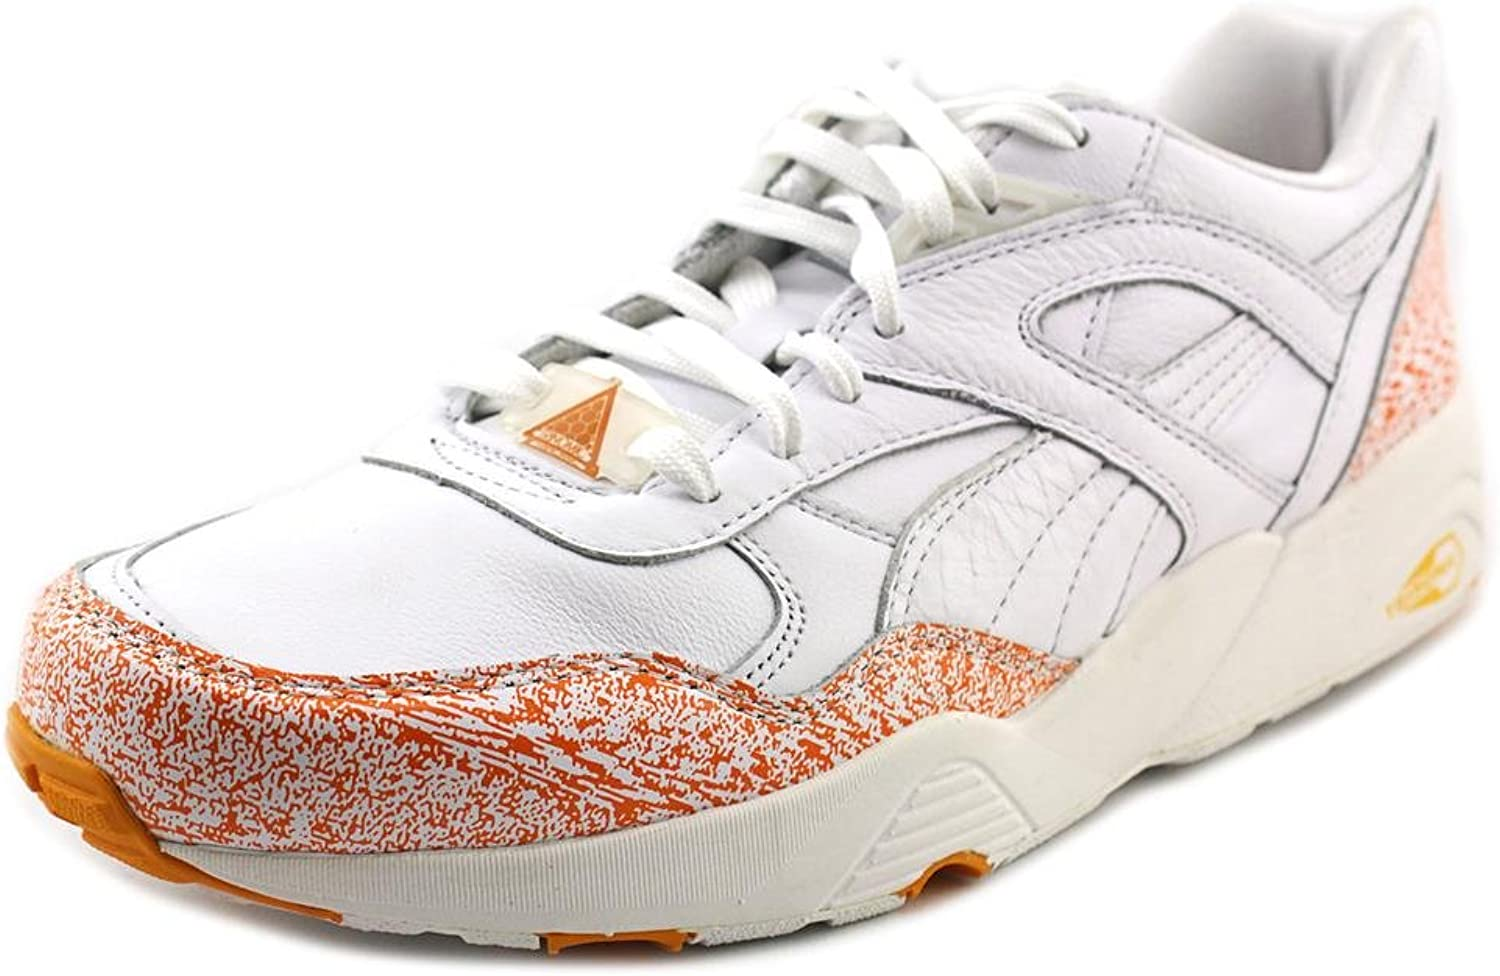 Puma Mens Snow Spatter Pack Leather Retro Casual shoes White 7